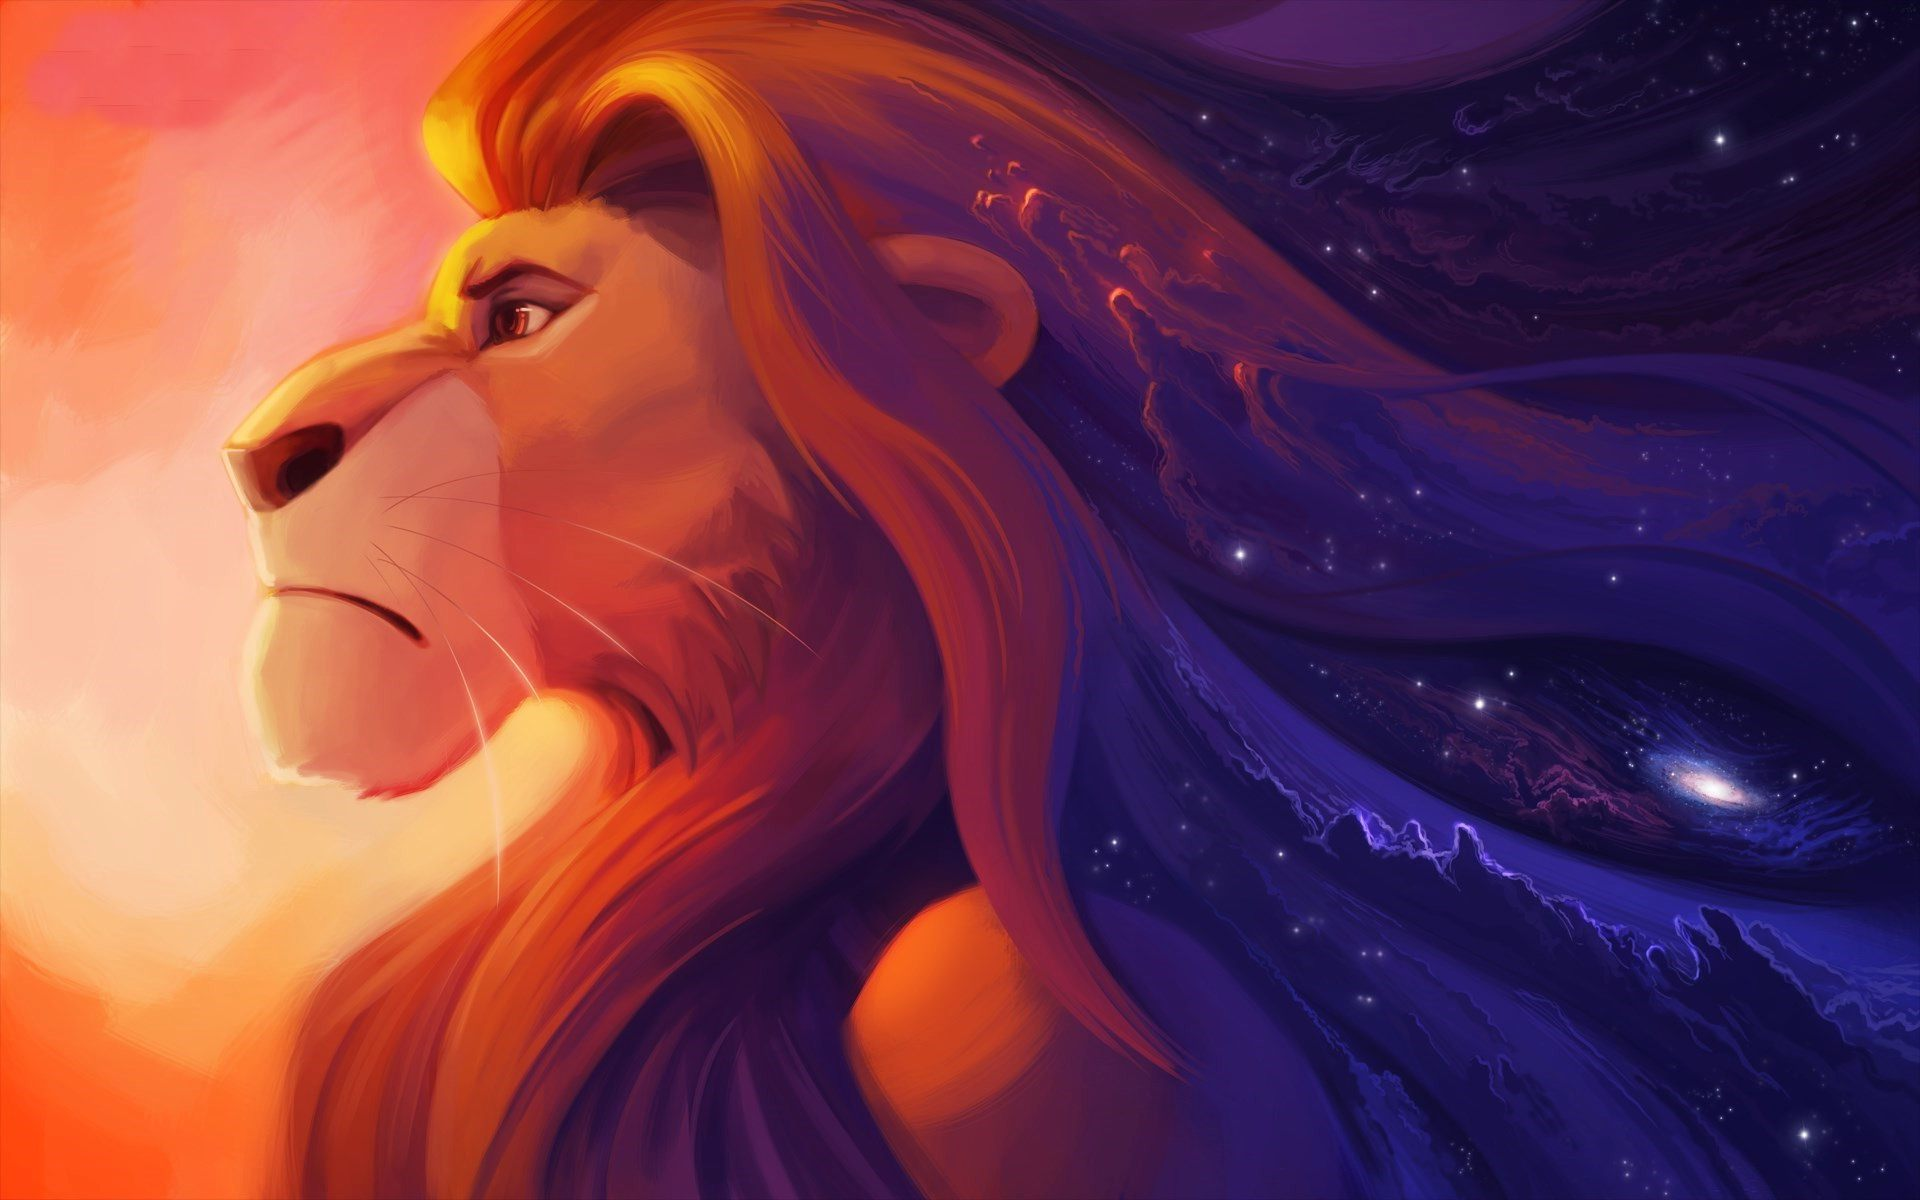 The Lion King Images Mufasa Fanart HD Wallpaper And Background Photos